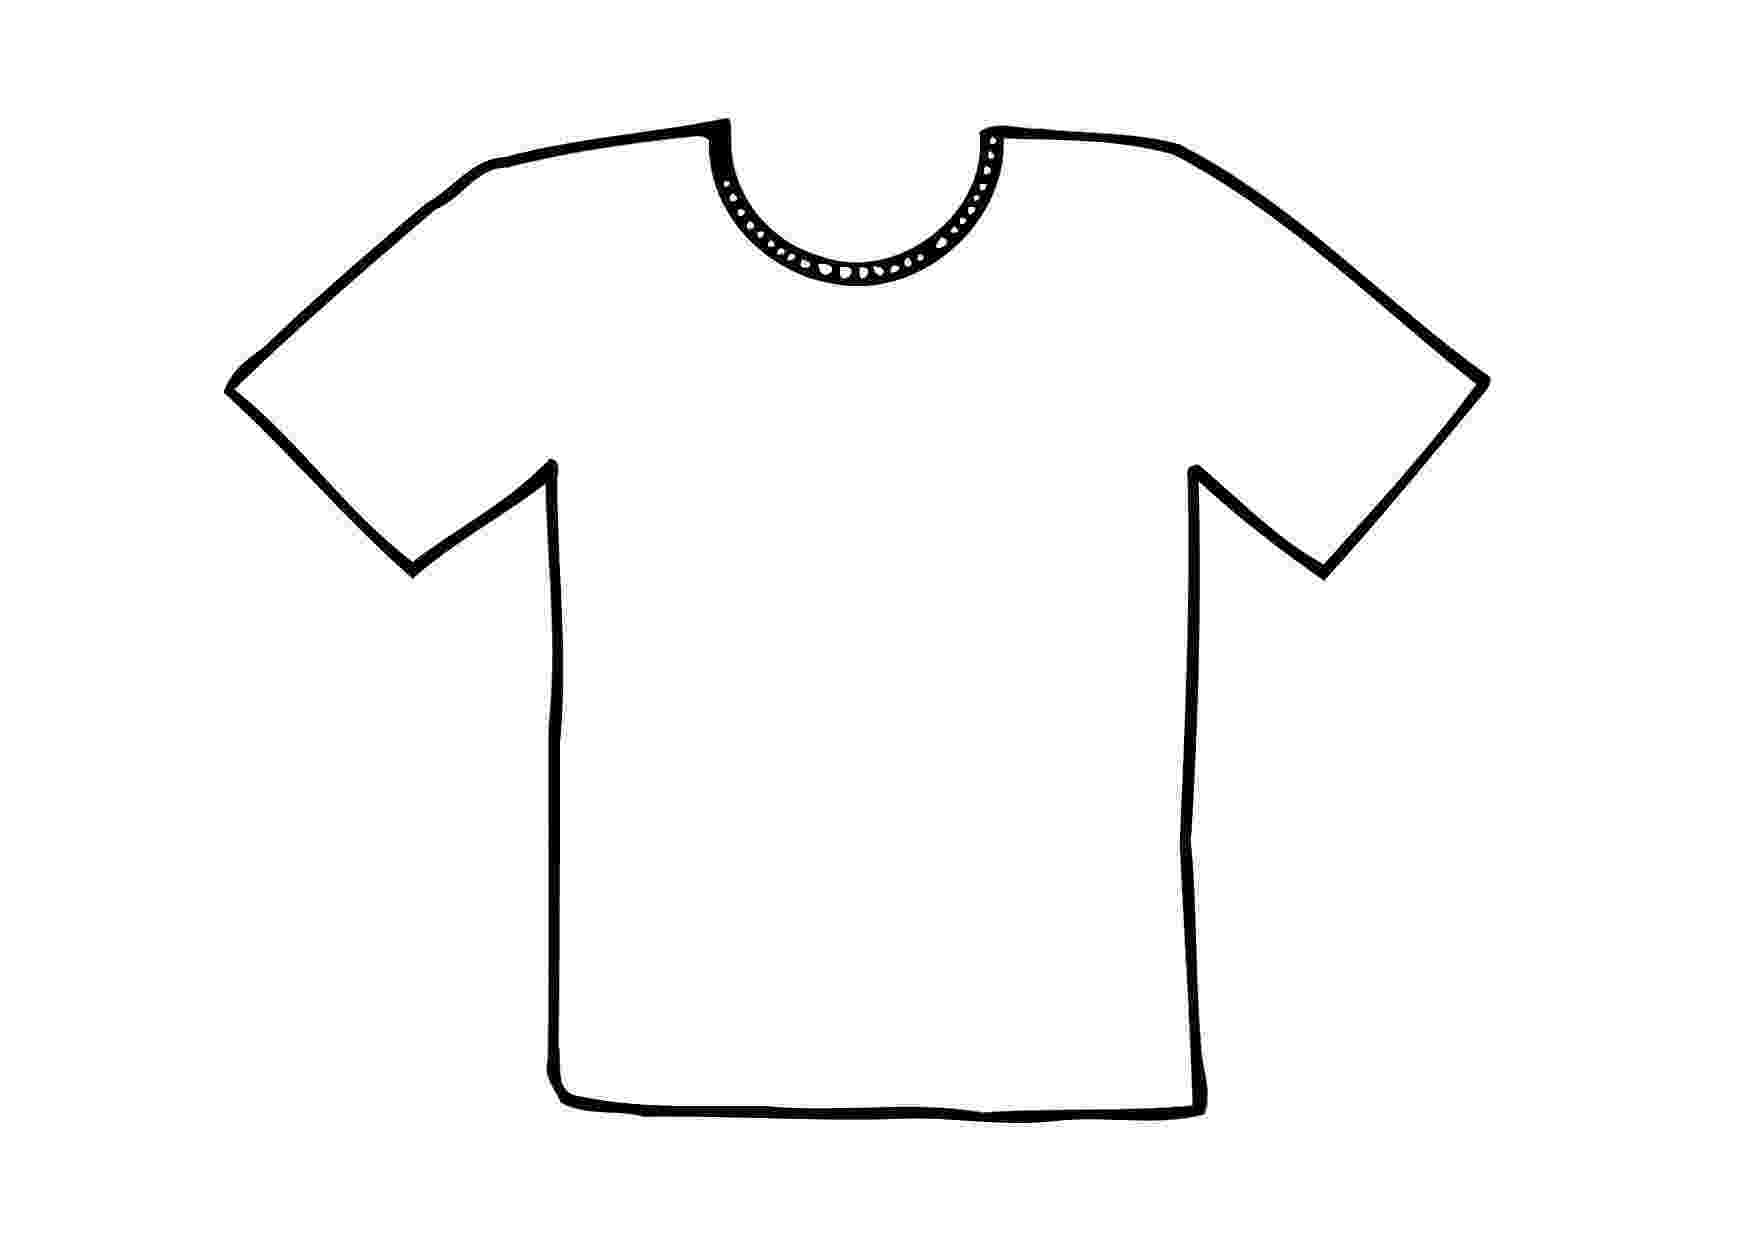 free printable t shirt coloring pages t shirt coloring pages download free t shirt coloring pages t printable free coloring shirt